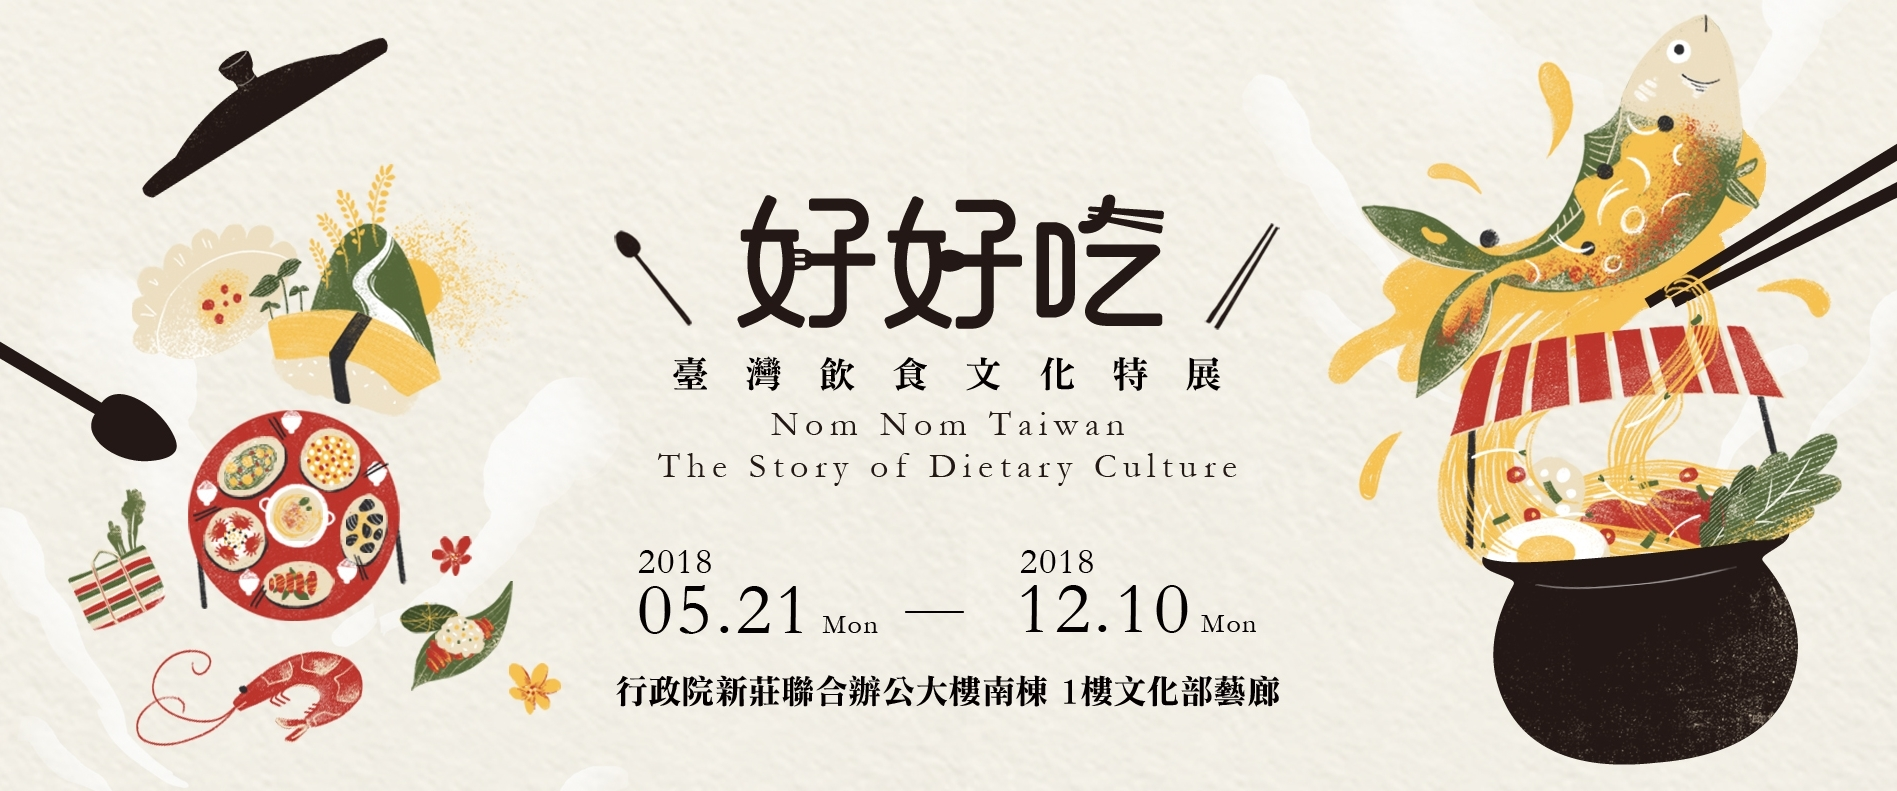 Nom Nom Taiwan: The Story of Dietary Culture[另開新視窗]